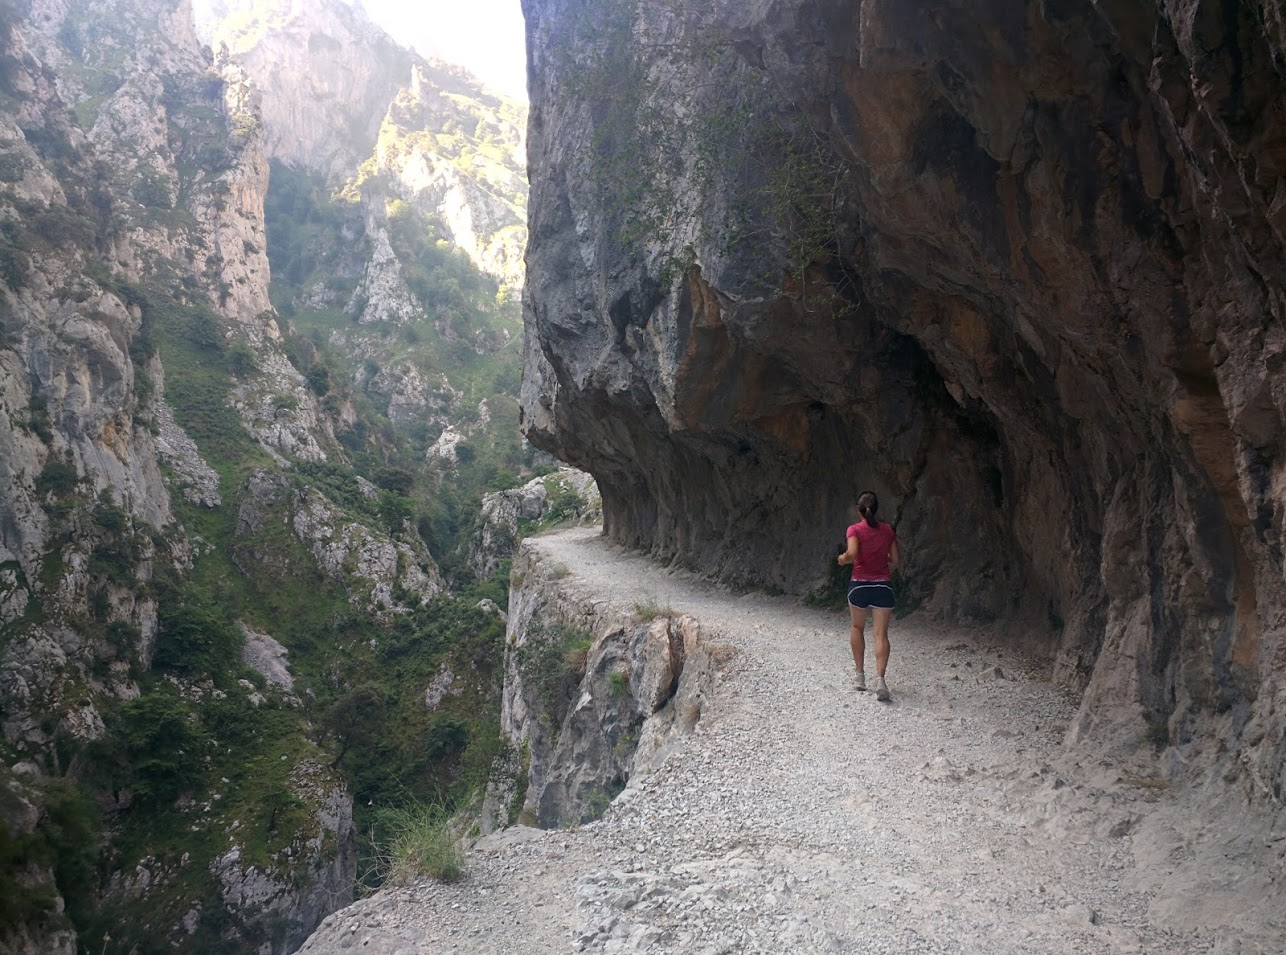 The path is literally carved out of a vertical rock face.